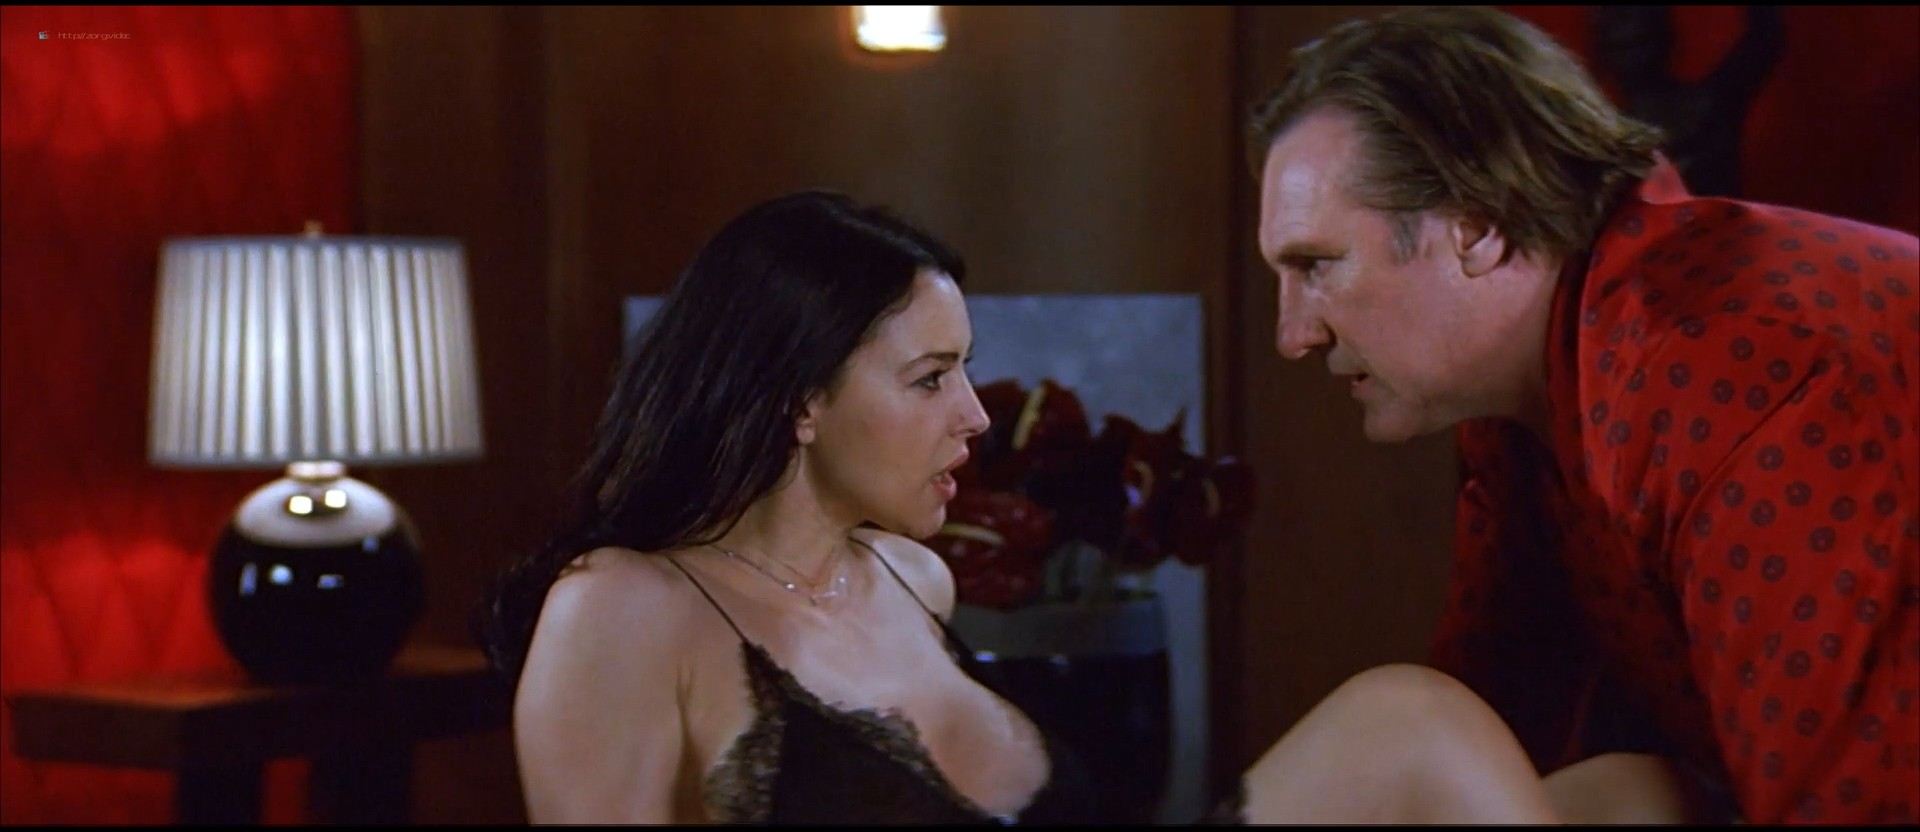 Monica Bellucci nude and sex - Combien tu m'aimes (2005) HD 1080p WEB (7)